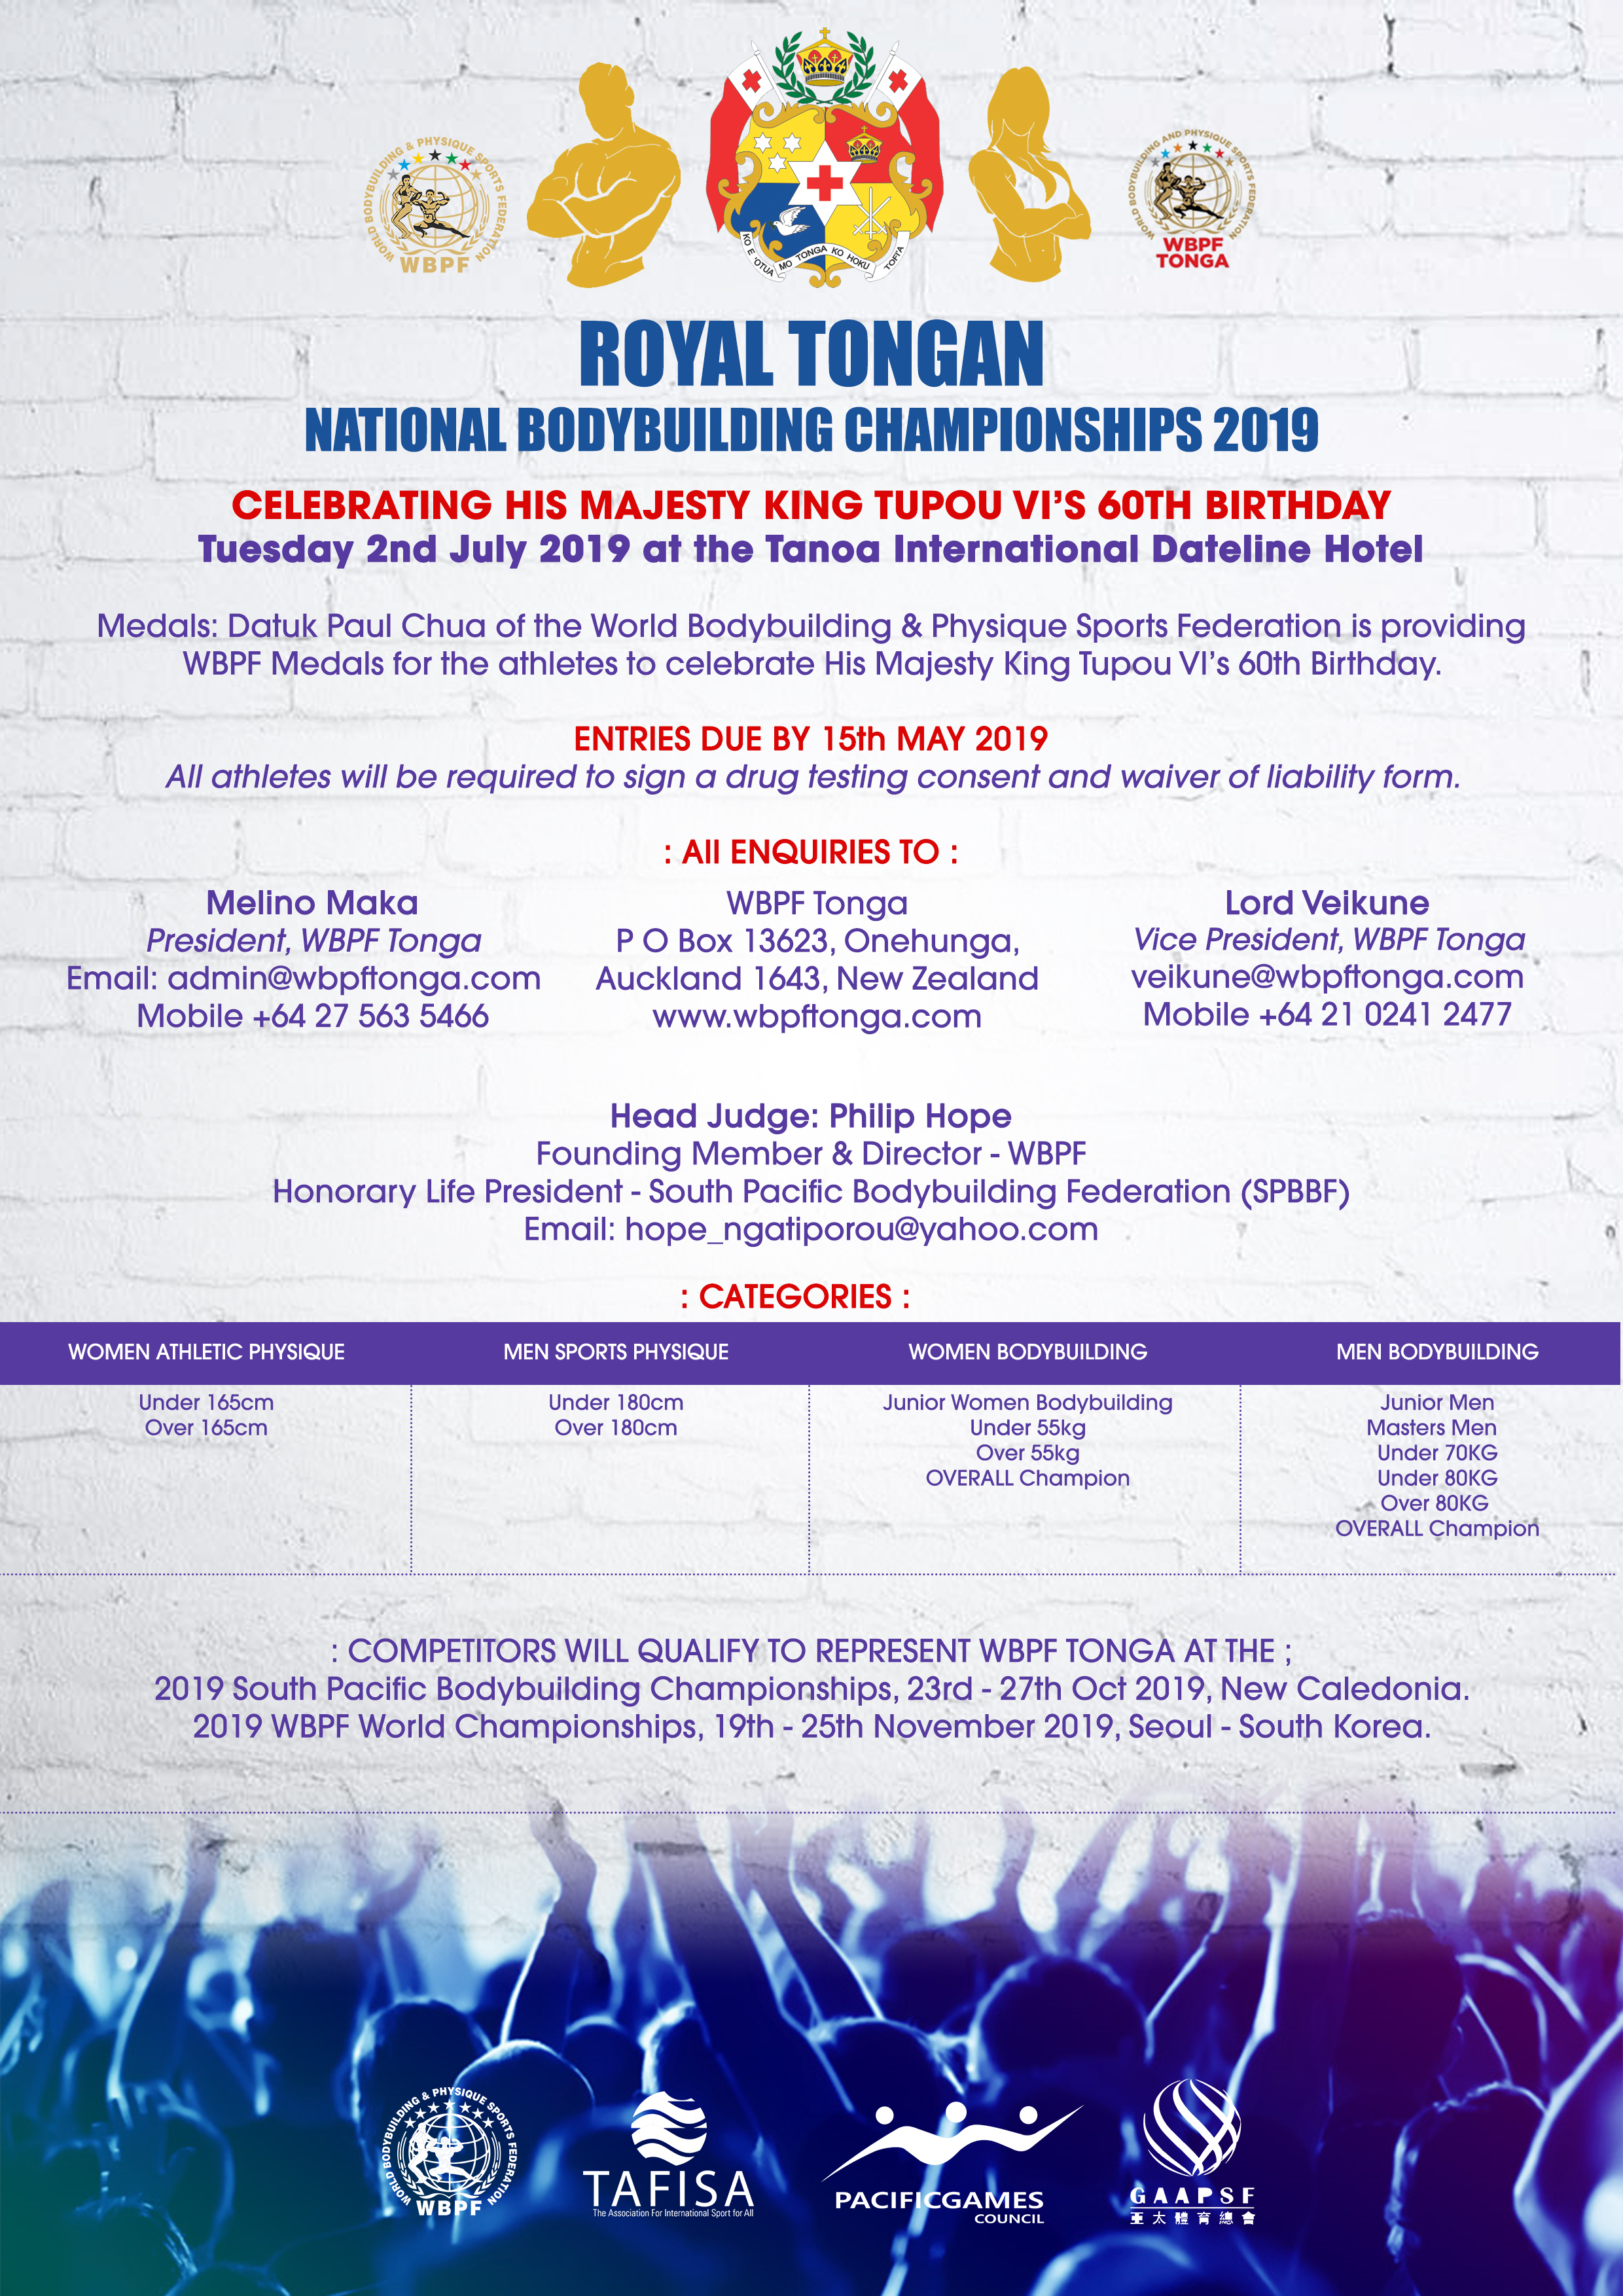 Royal Tongan National Bodybuilding Championship 2019